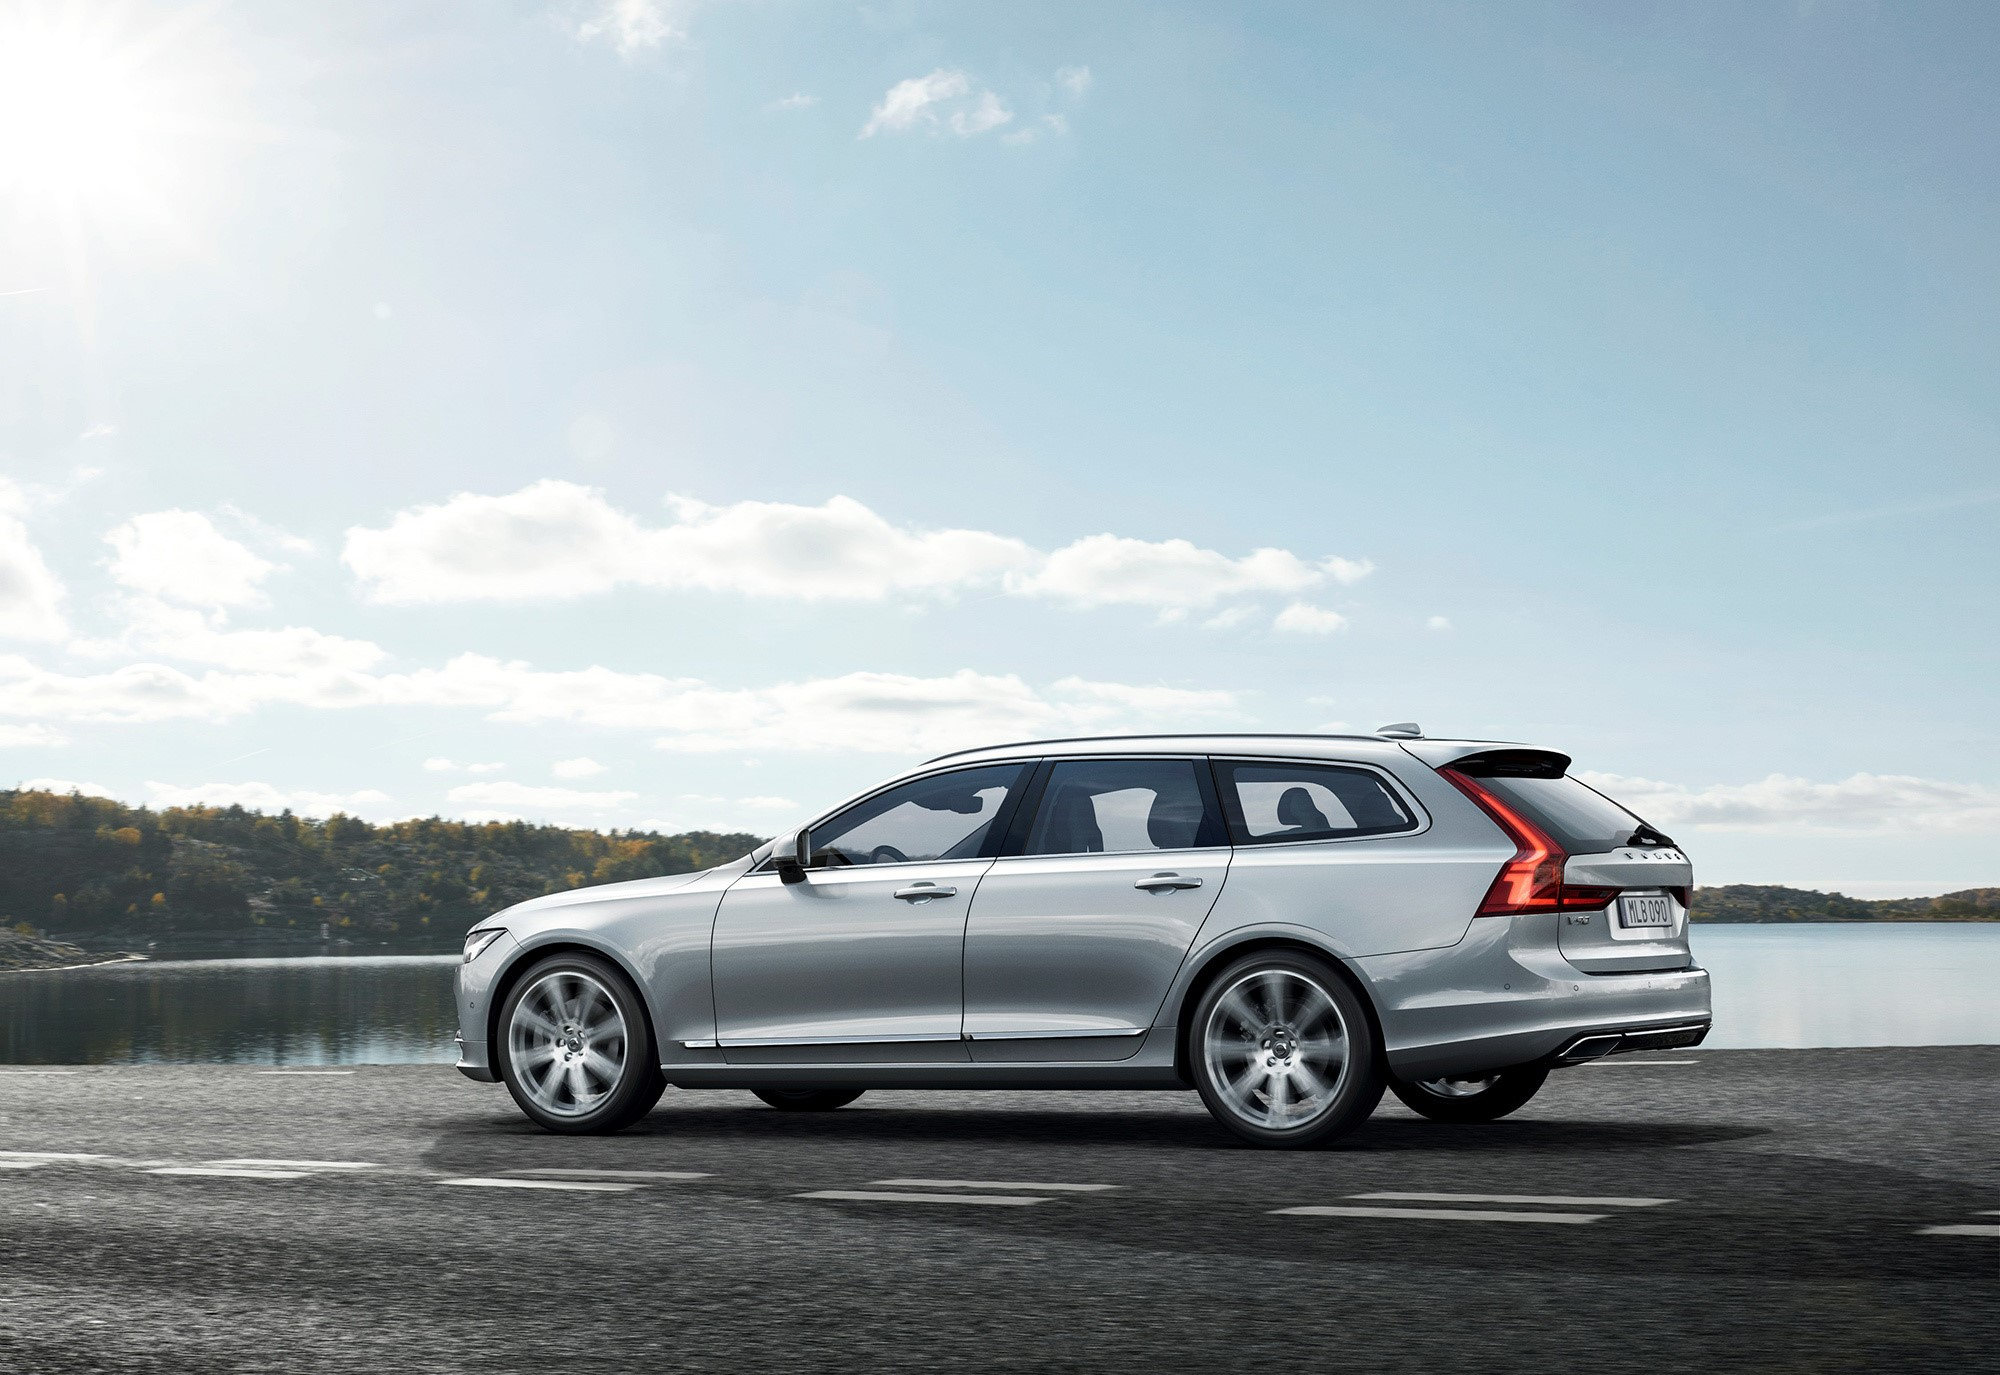 Volvo V90 Computer Wallpapers